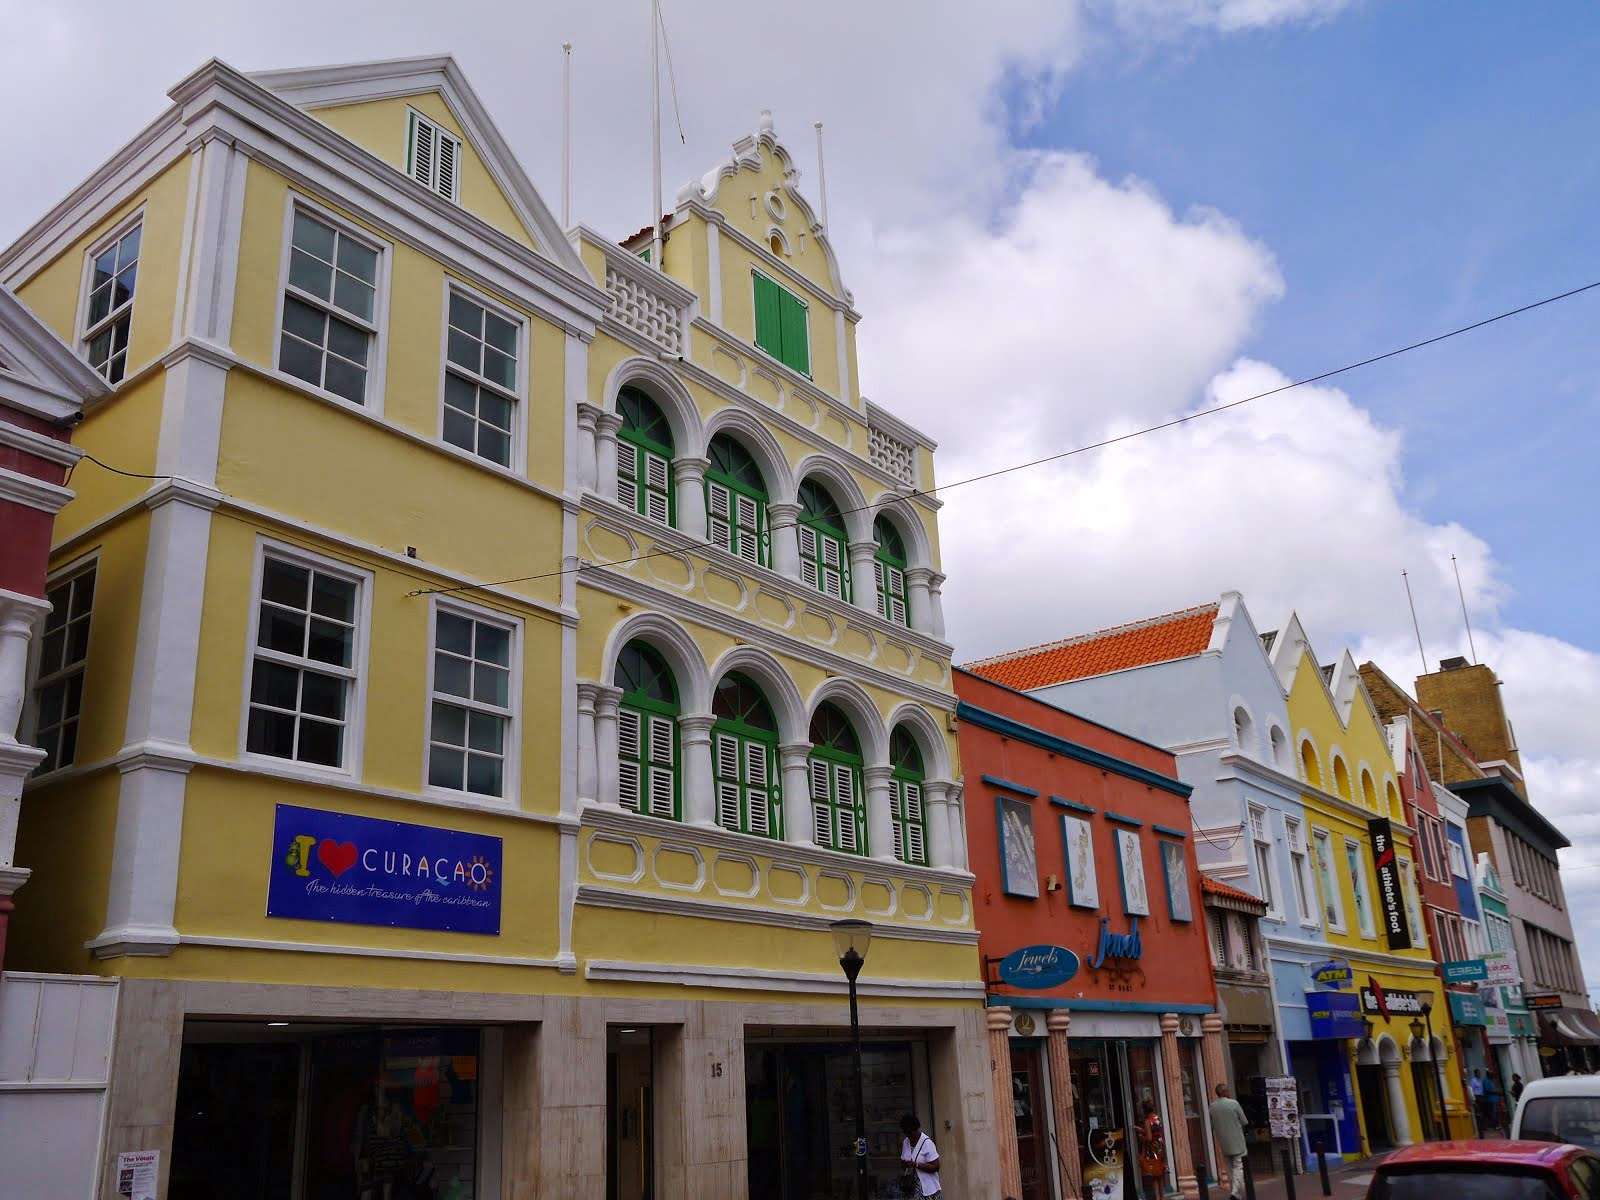 News from Curacao